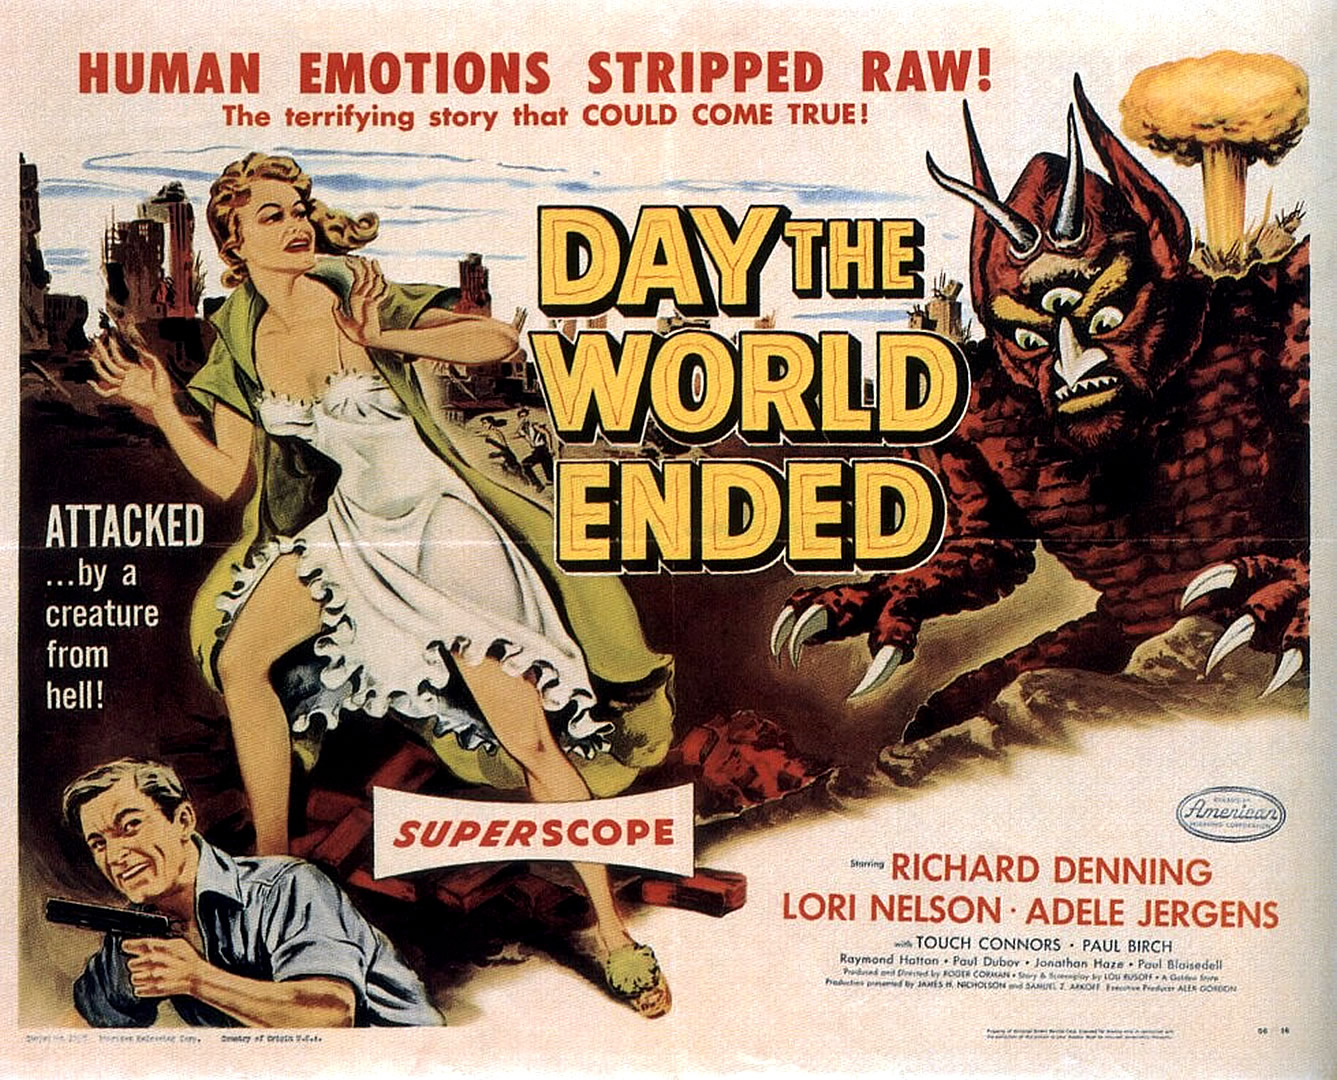 day-the-world-ended-1955